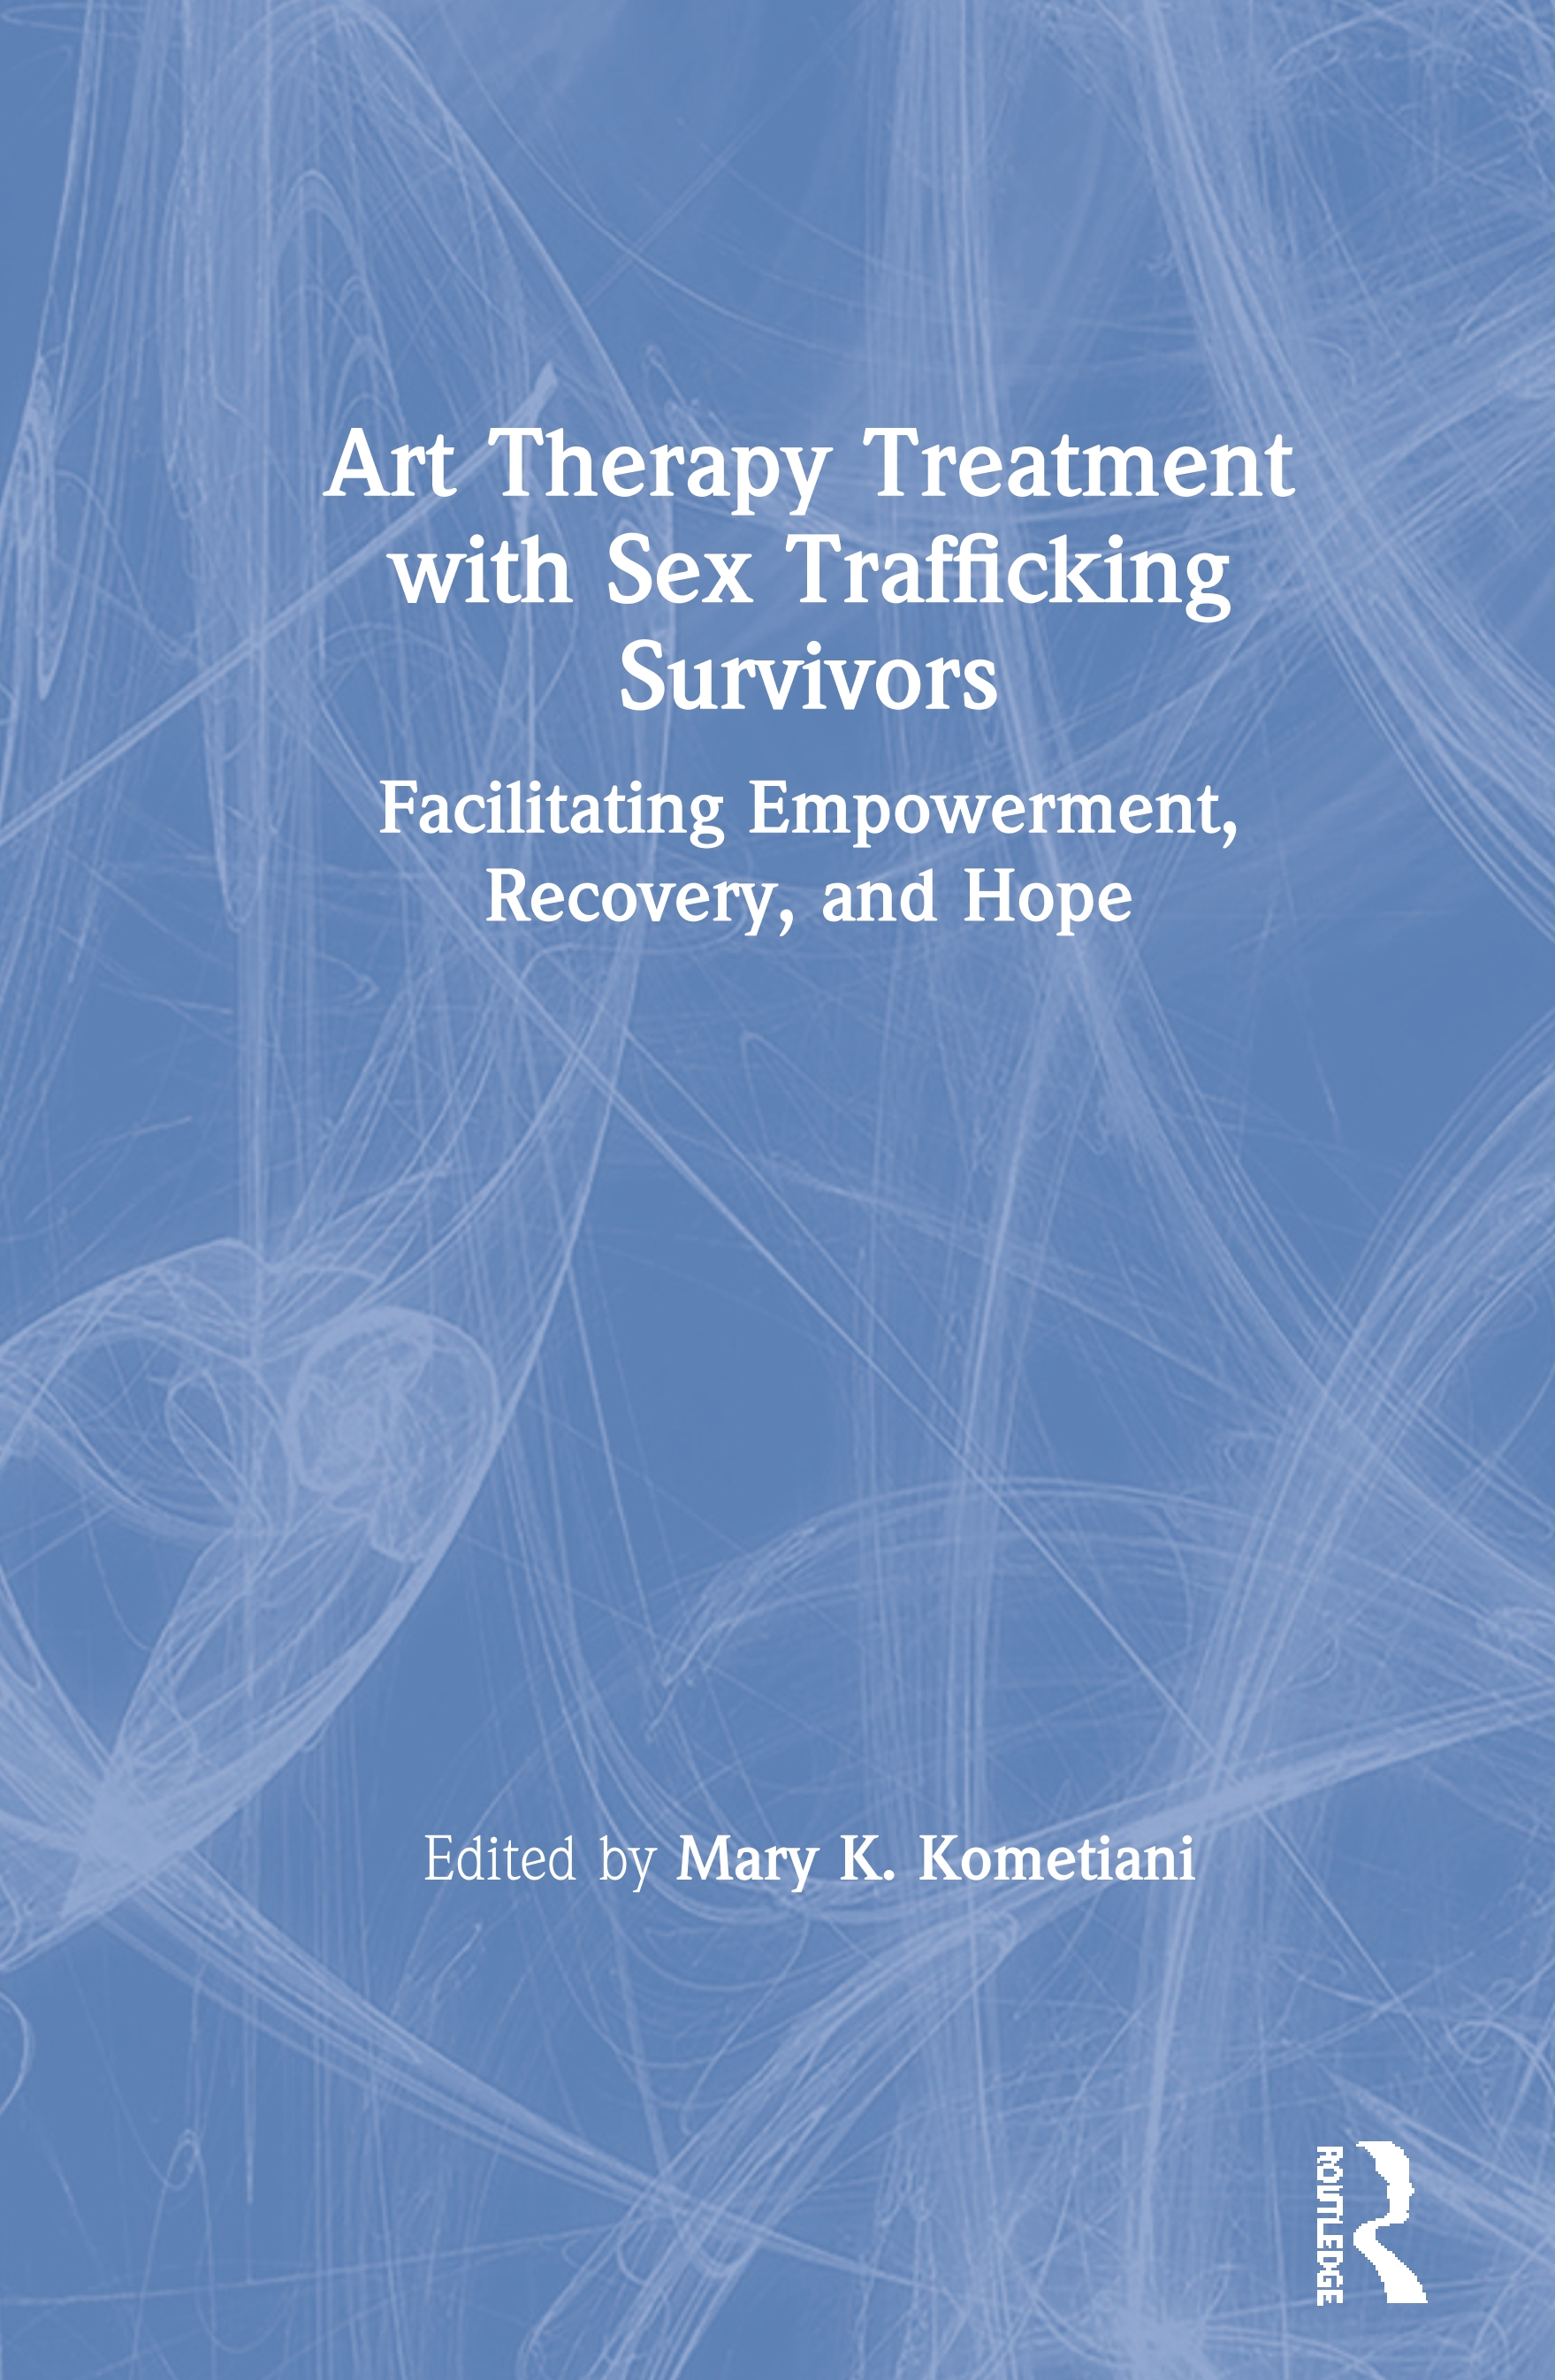 Art Therapy Treatment with Sex Trafficking Survivors: Facilitating Empowerment, Recovery, and Hope book cover